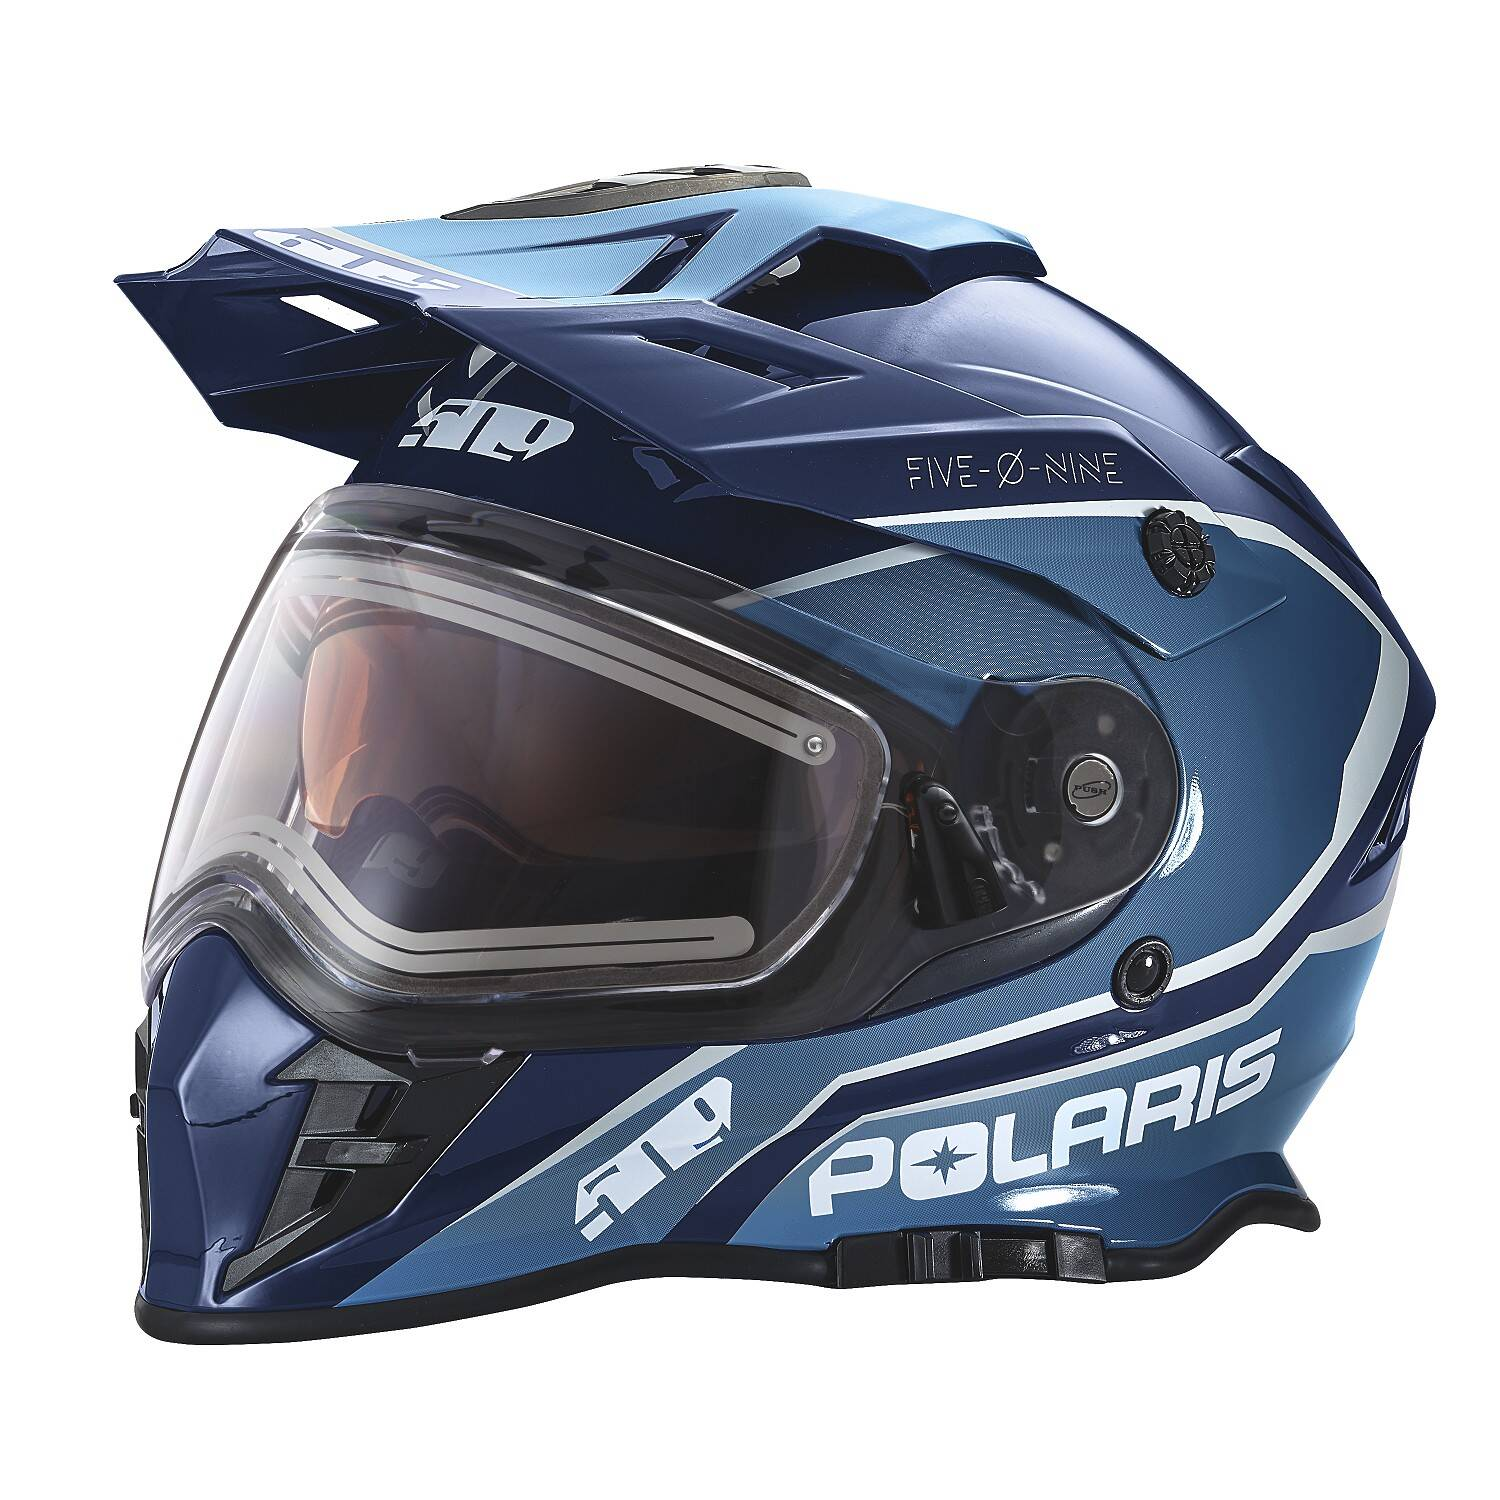 509® Delta Adult Moto Helmet with Removable Electric Shield, Blue